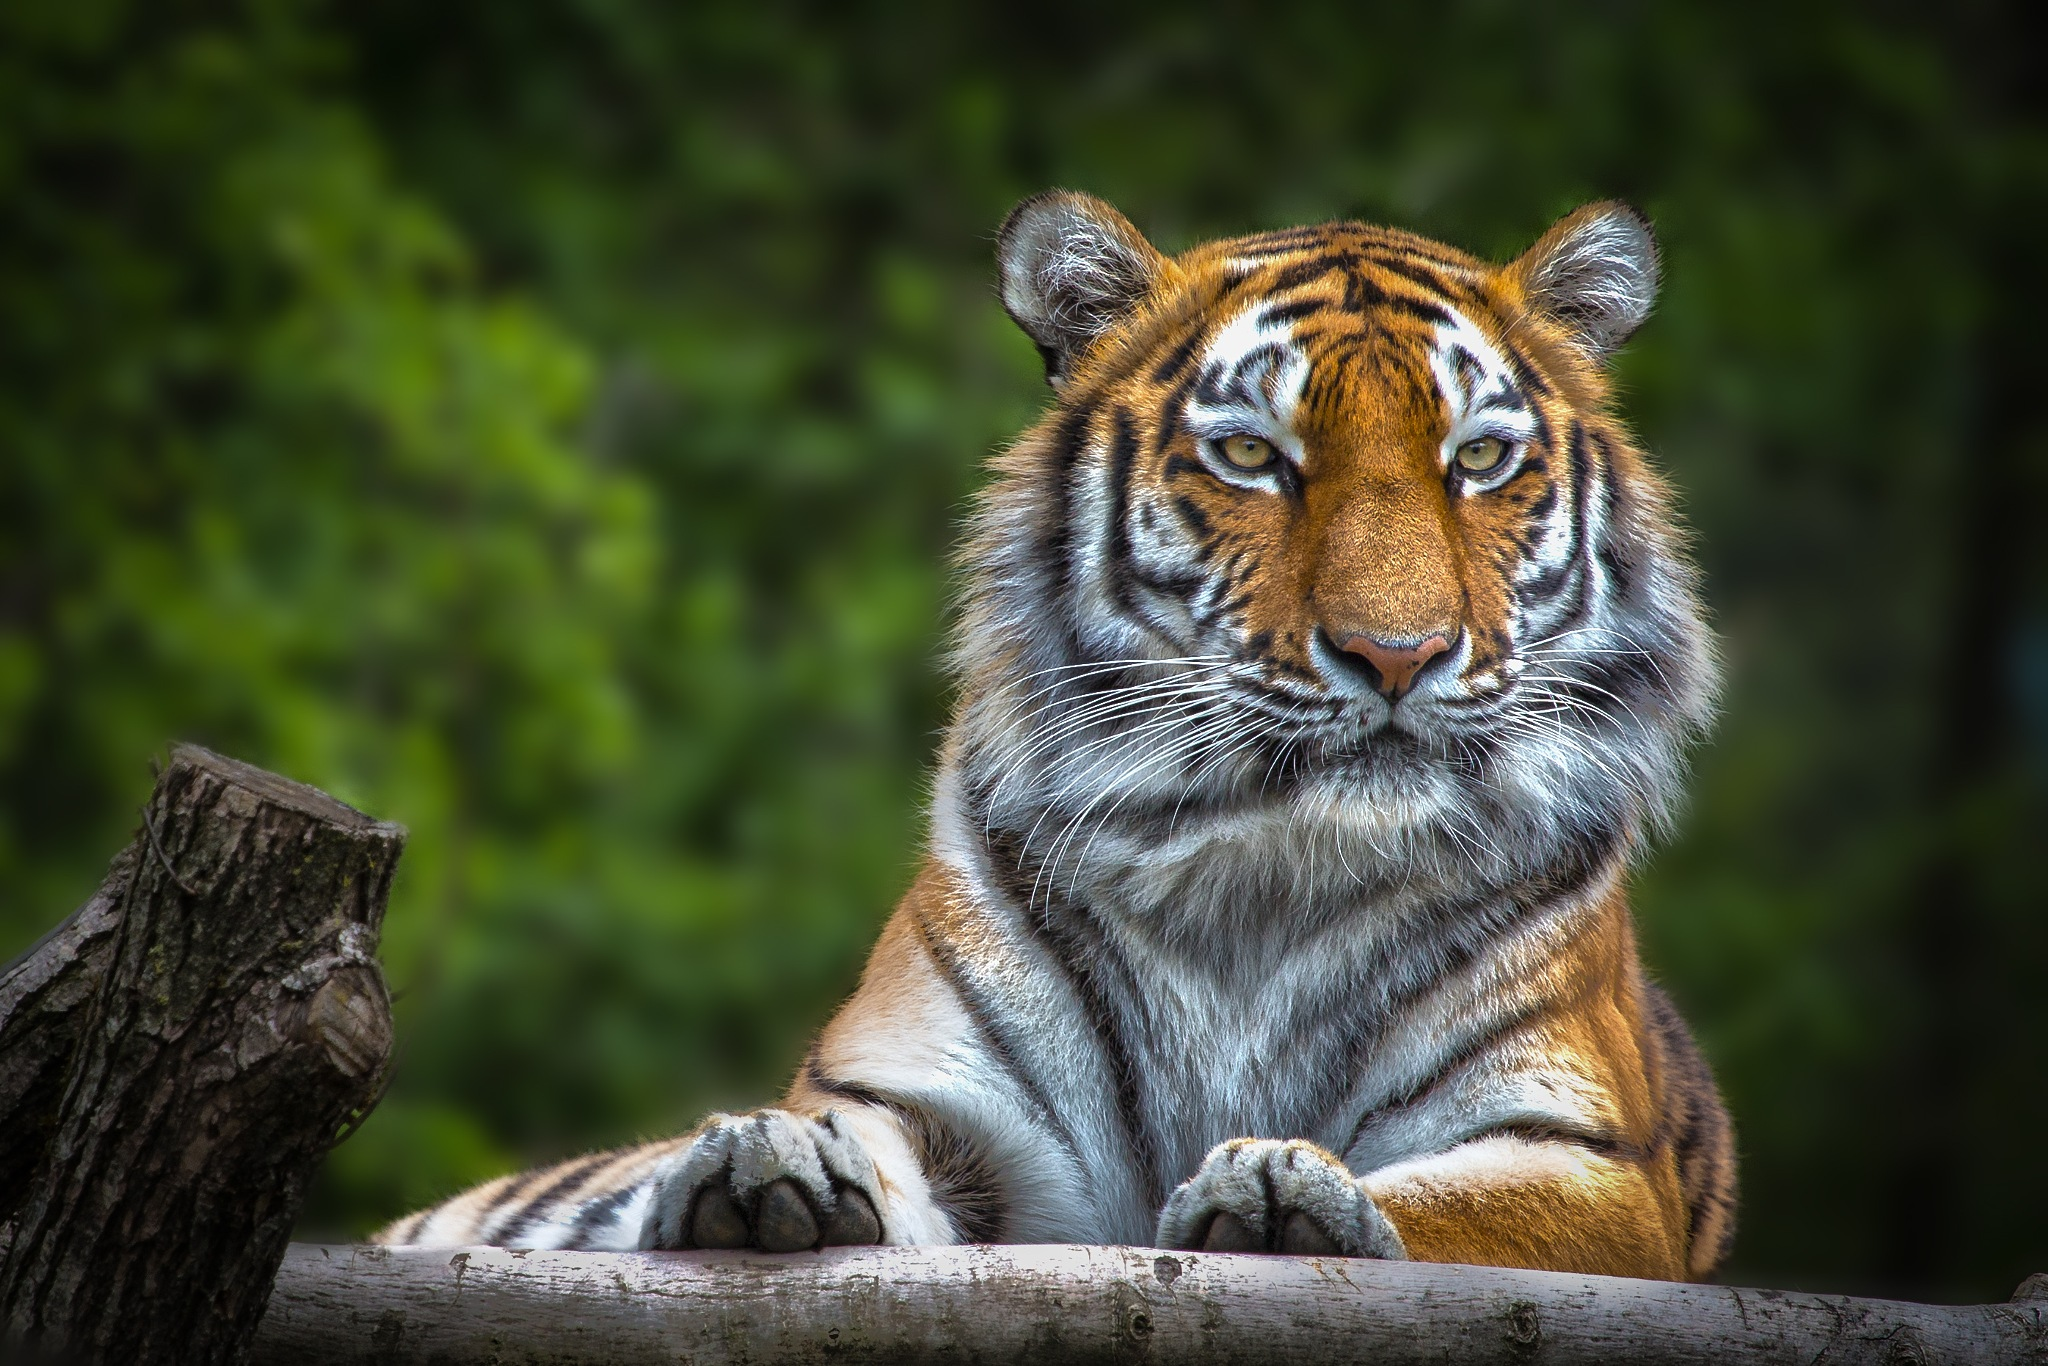 Tiger beauty by Christoph Reiter